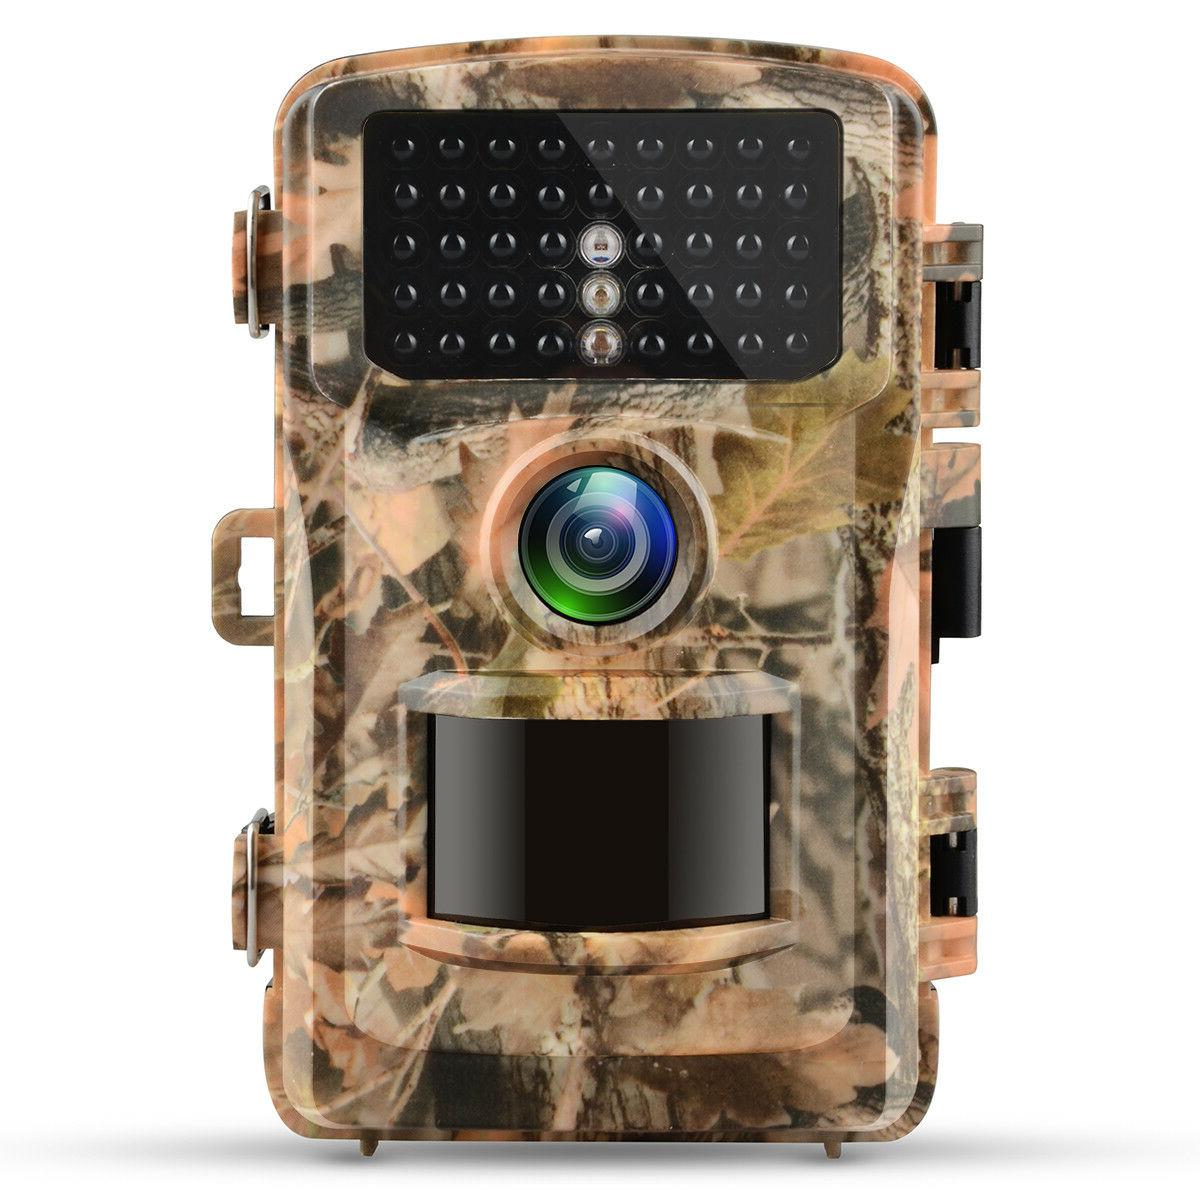 Campark 1080P HD Trail Camera Wildlife Hunting Scouting